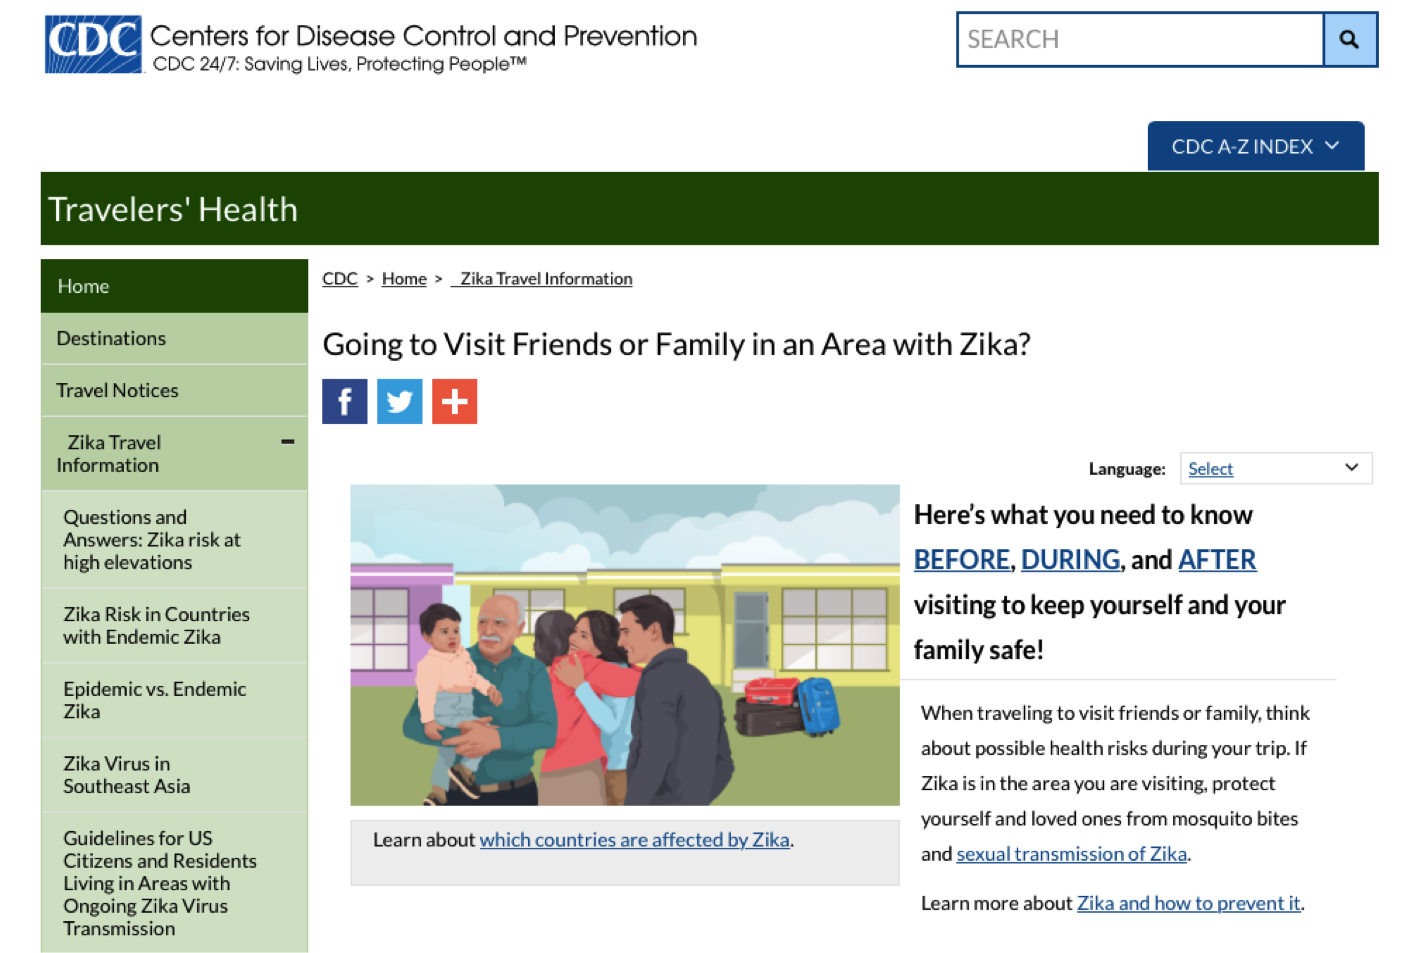 Going to Visit Friends or Family in an Area with Zika